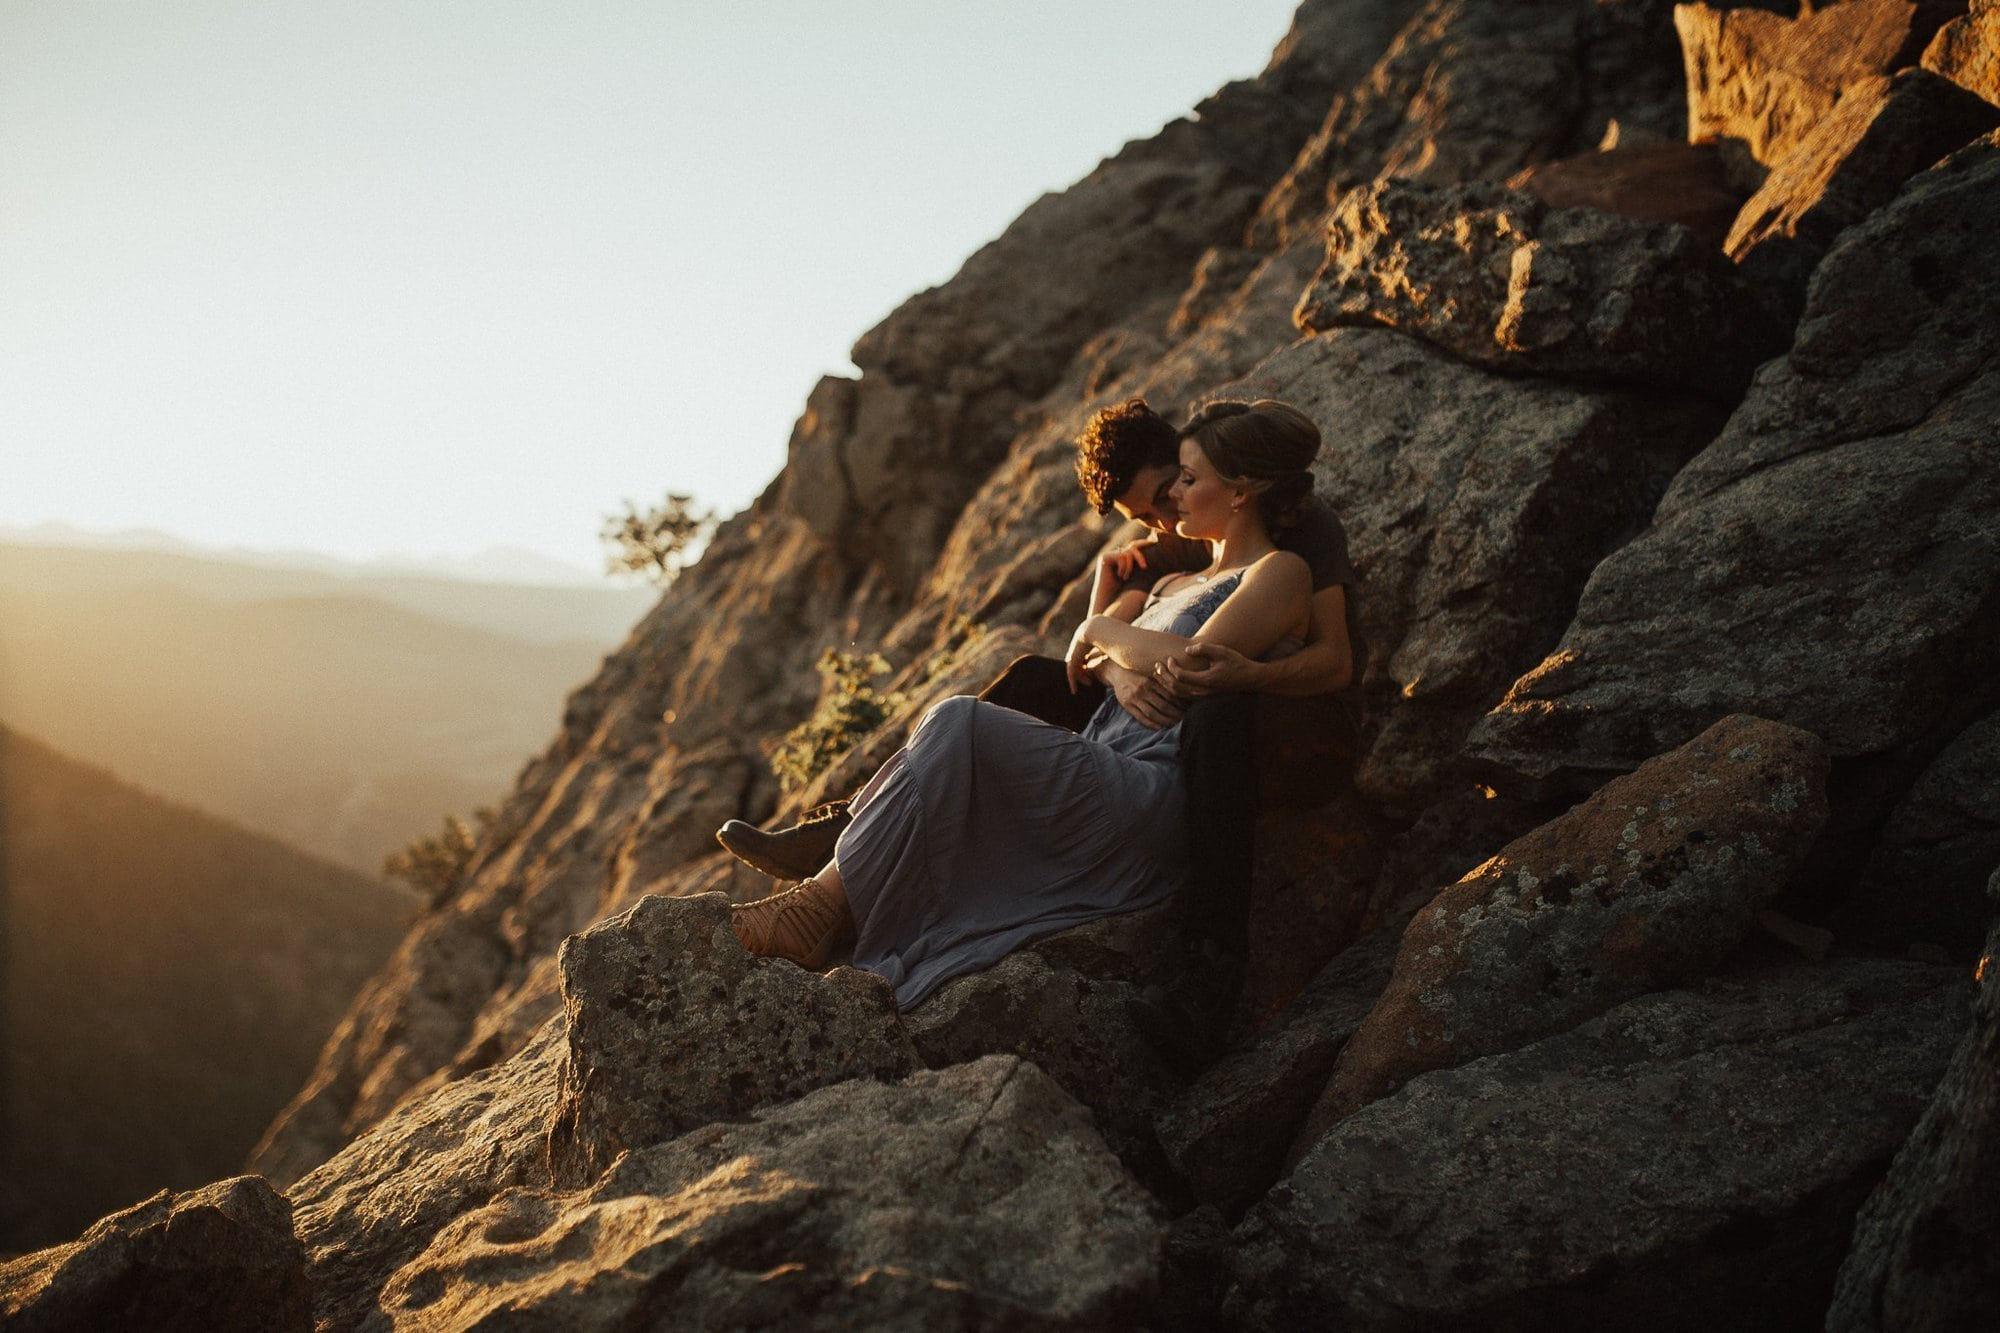 LOST GULCH OUTLOOK ENGAGEMENT PHOTOS | ALICIA + ELIAS | JUSTYNA E BUTLER PHOTOGRAPHY | BOULDER, COLORADO WEDDING PHOTOGRAPHER